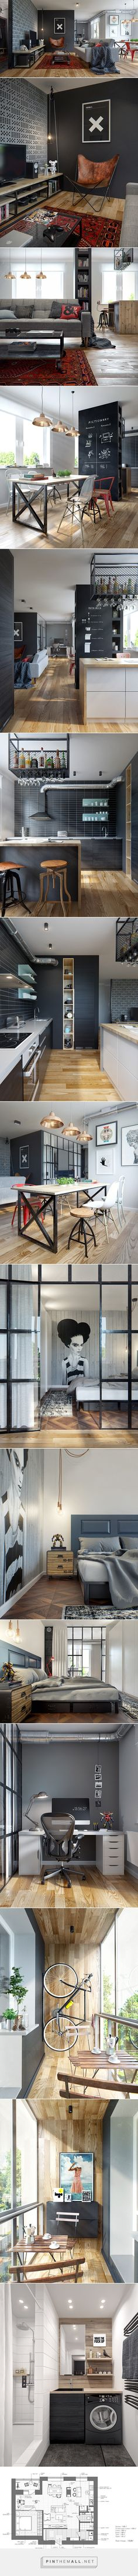 bfdc31681c9 Clever design solutions in cozy 69 square meters apartment - created via  http